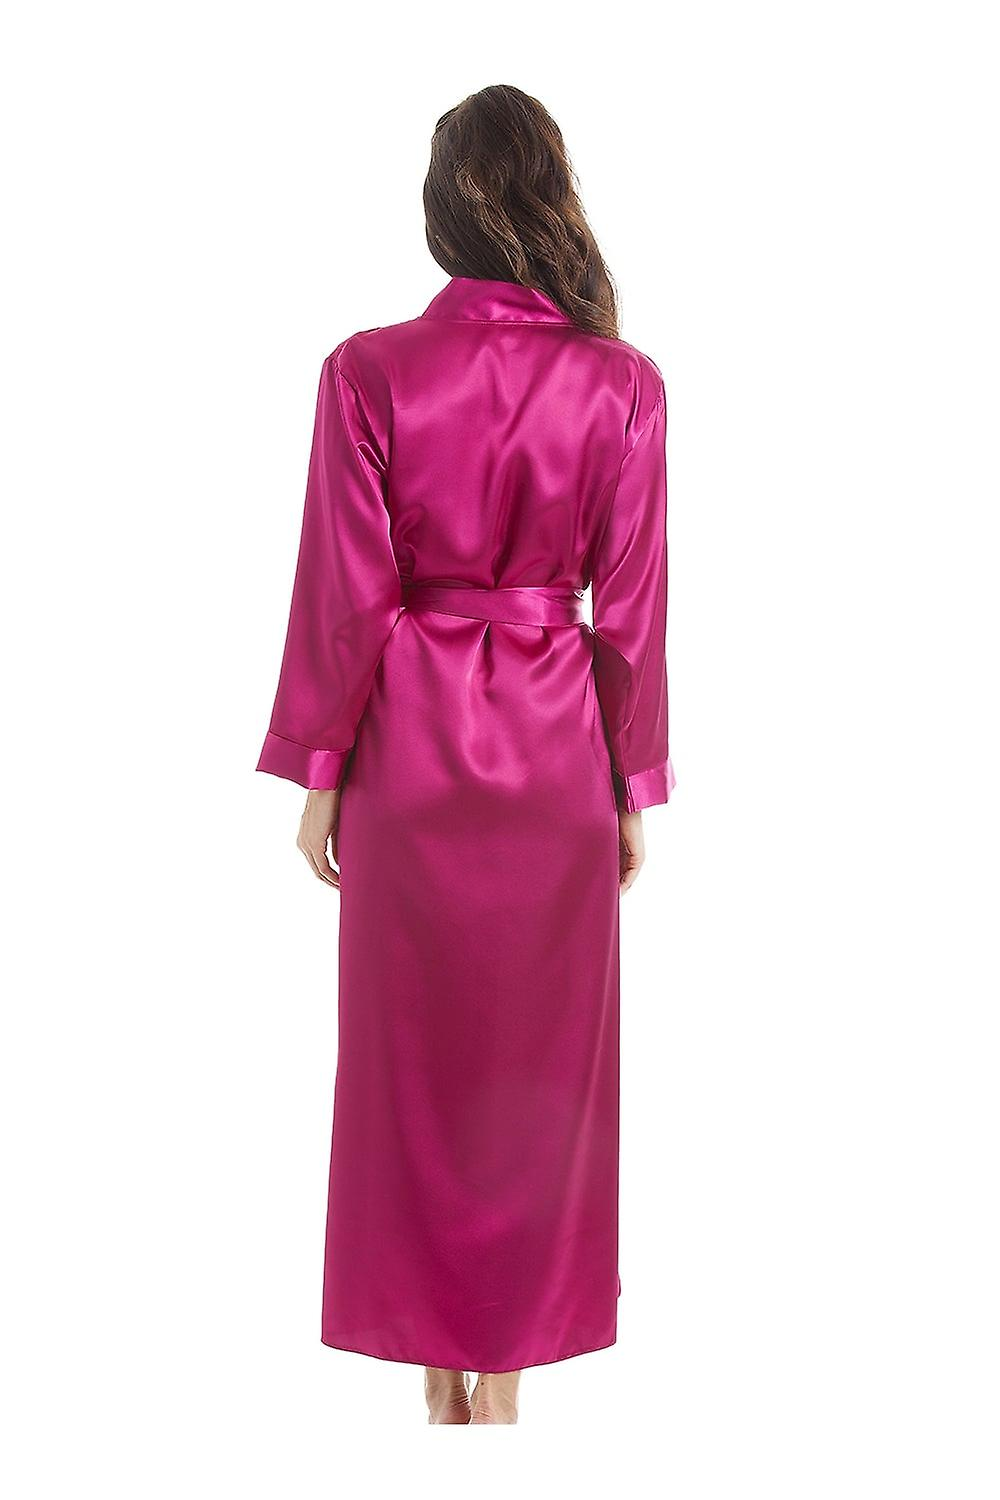 Camille Luxury Pink Satin Long Length Dressing Gown Wrap